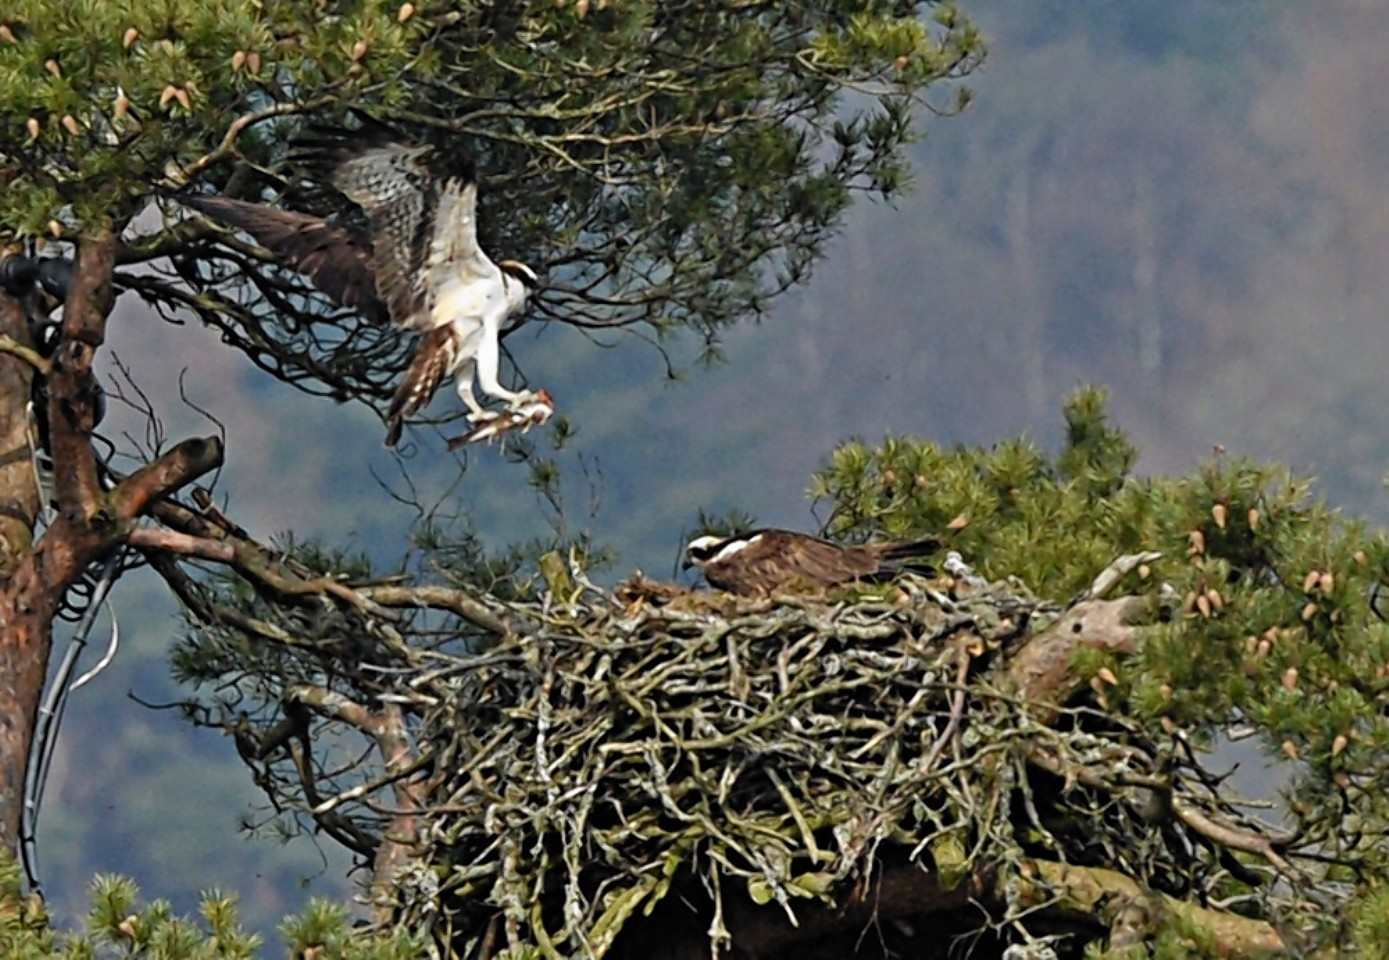 Lady the osprey, who has been delighting visitors to the Loch of Lowes, Dunkeld, for years